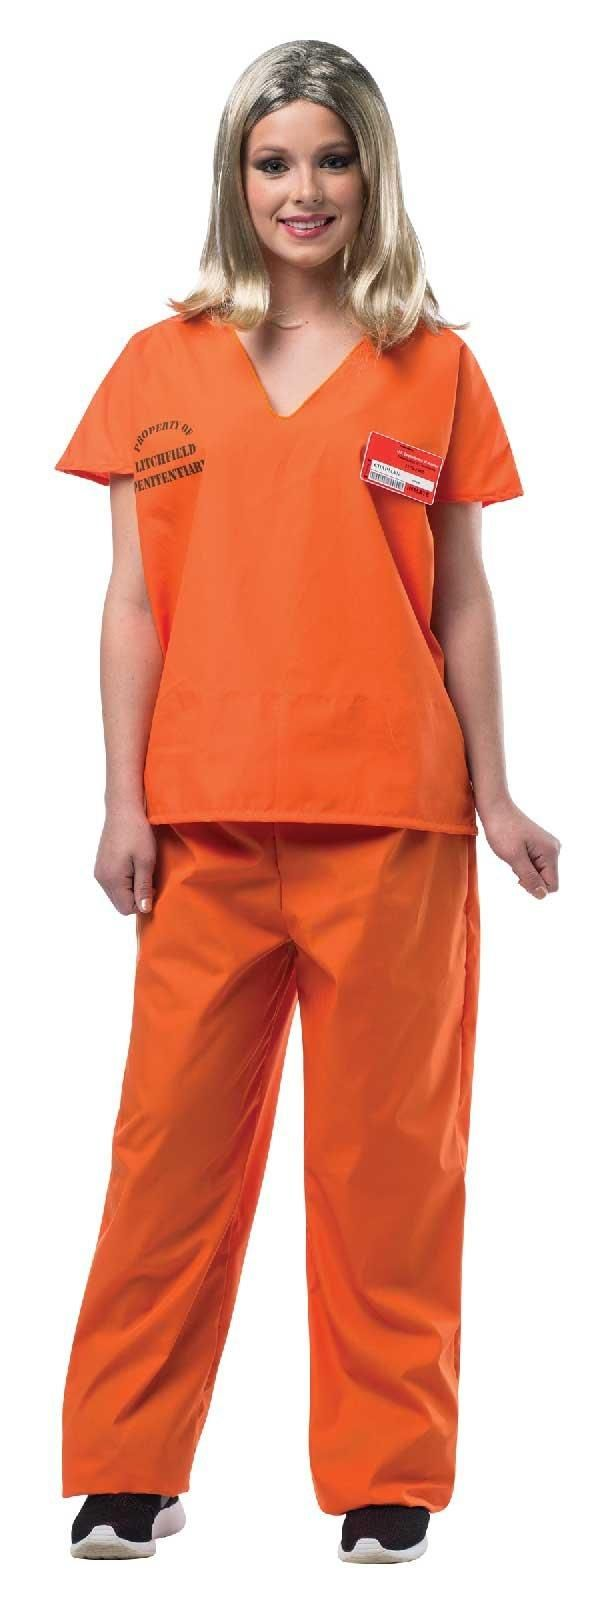 Girls Trouble Maker Prisoner Costume - Party City | Halloween ...